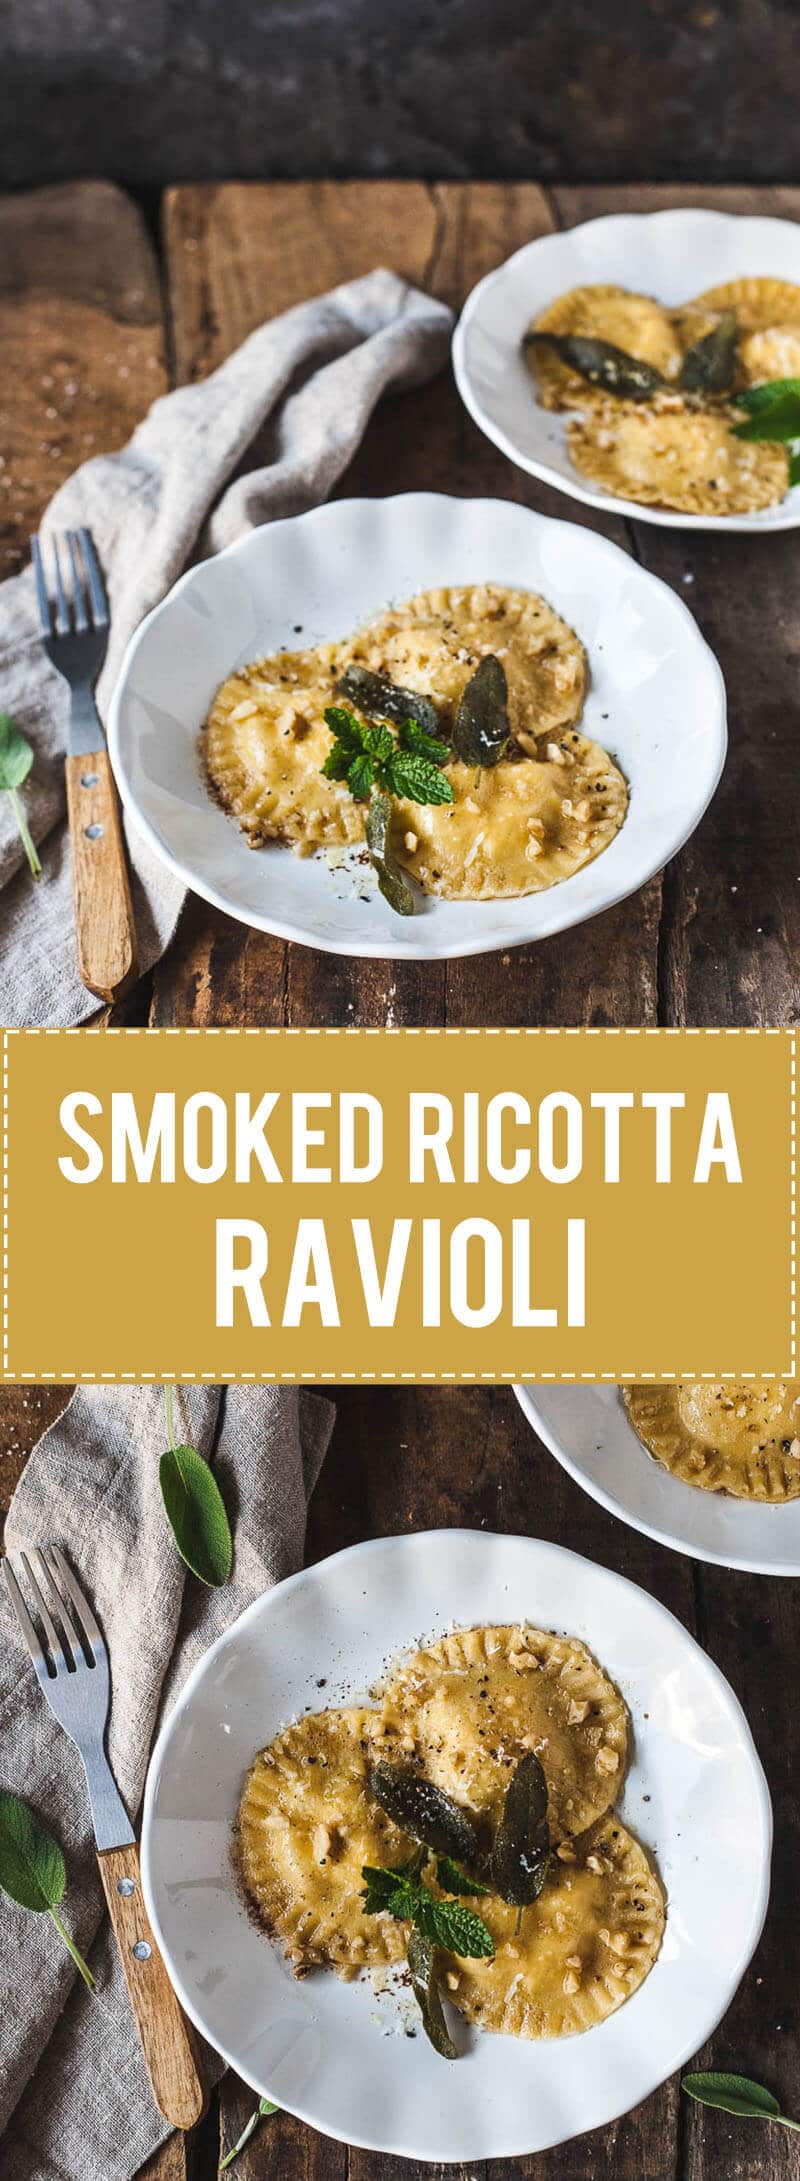 Homemade pasta? This Smoked Ricotta Ravioli in Sage Butter Sauce is a breeze to make, vegetarian and delicious! | Vibrant Plate